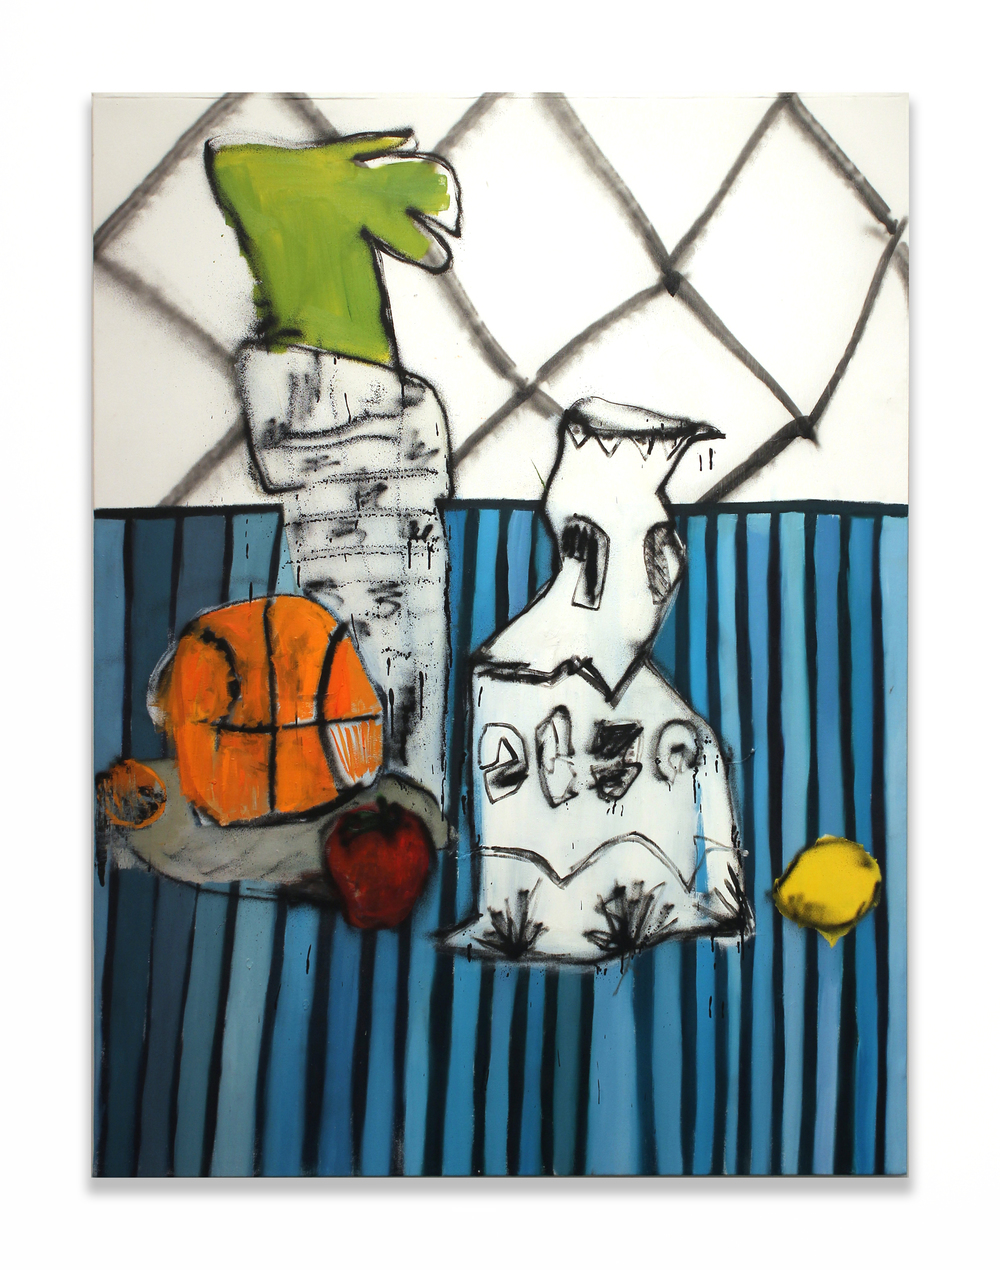 Still Life with Basketball, Vase, and Plant